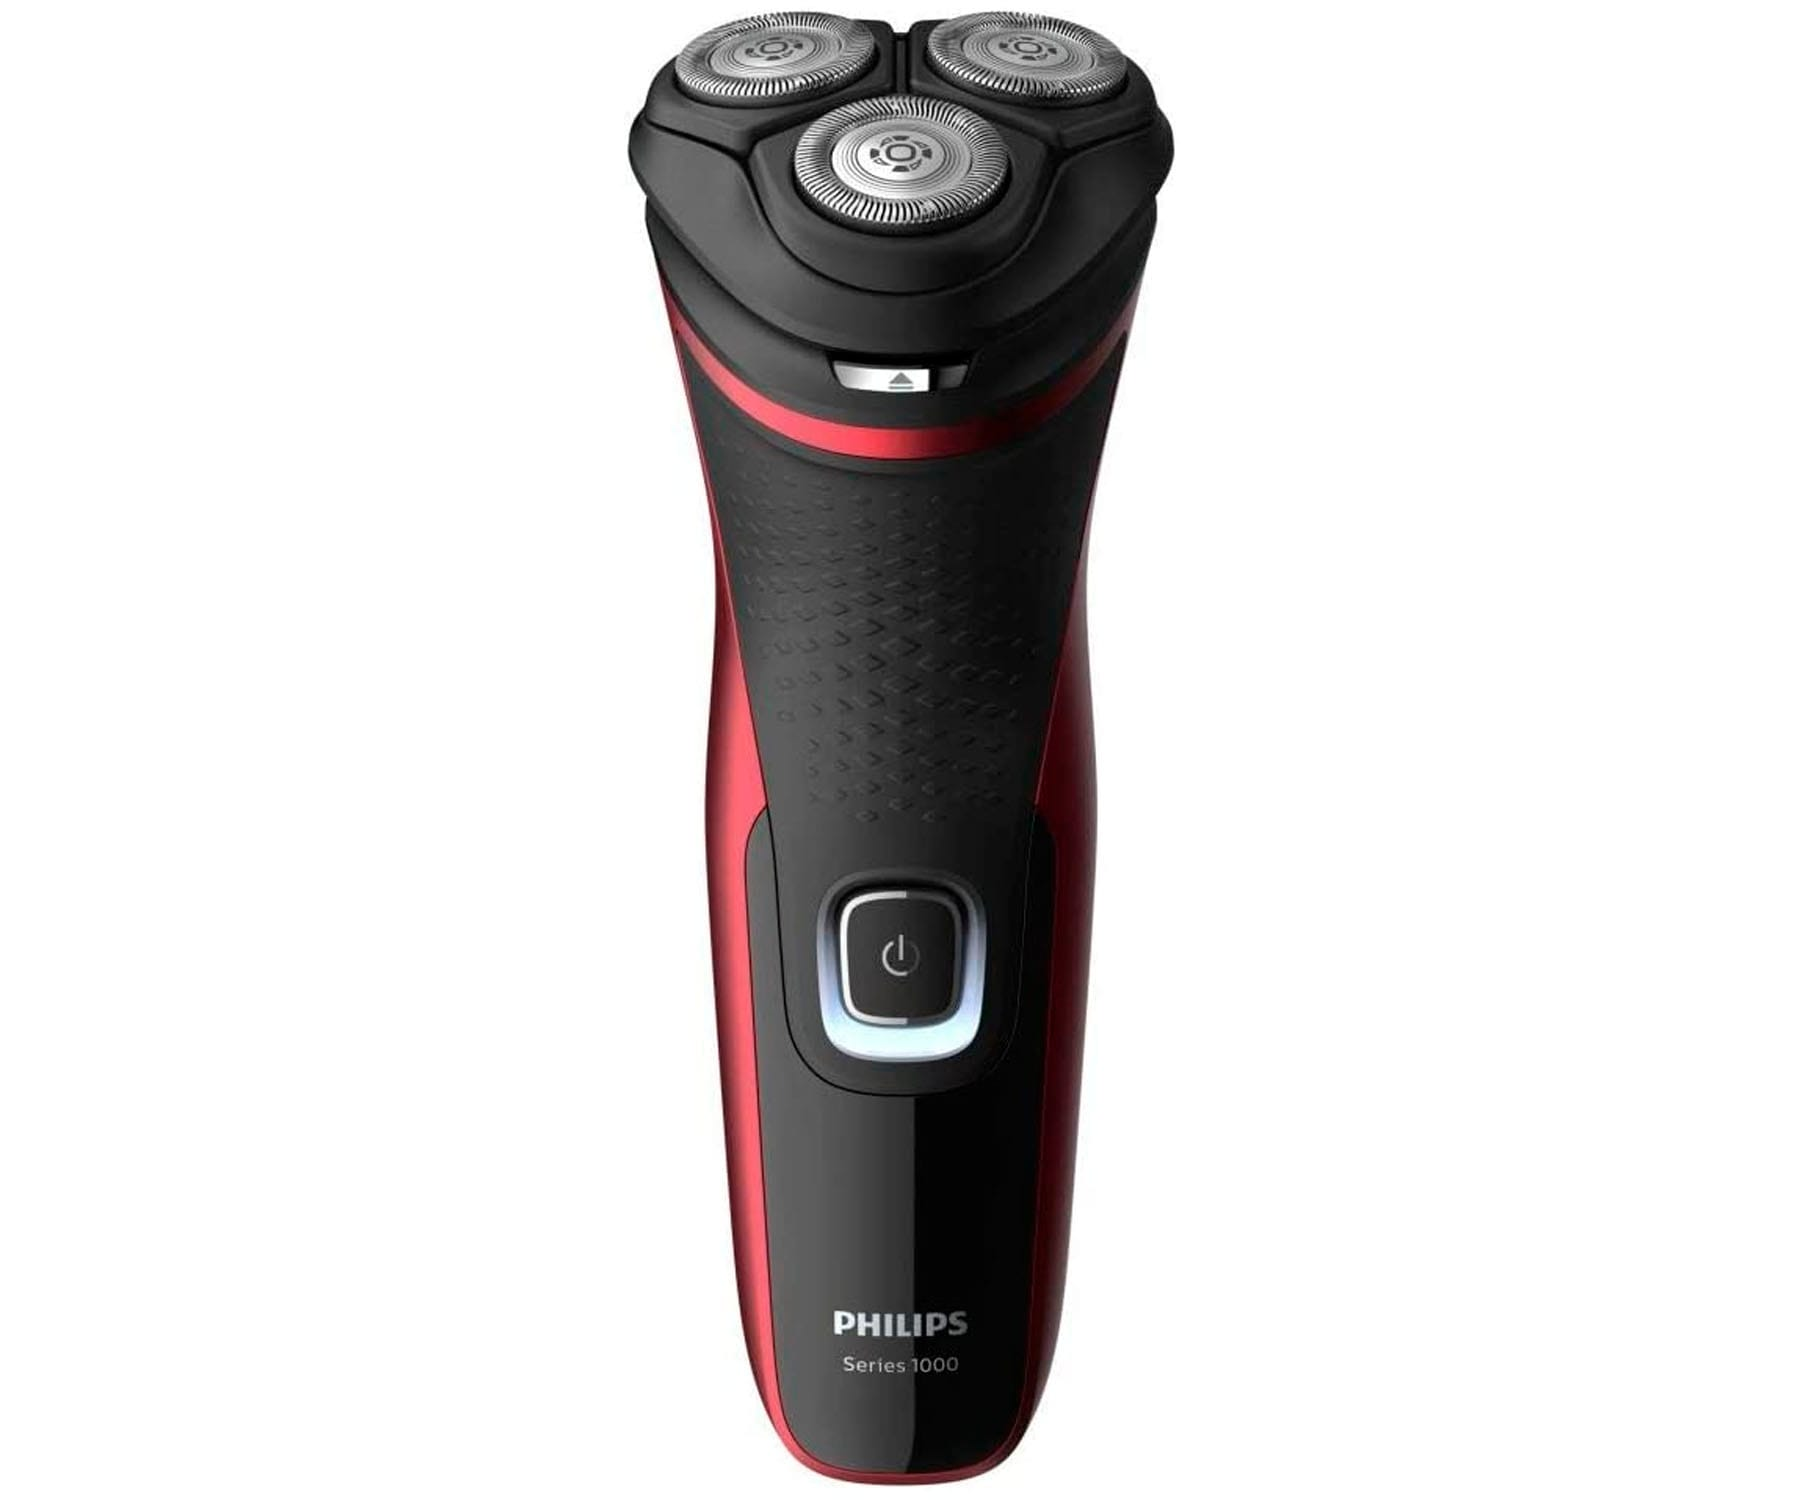 PHILIPS S1333/41 AFEITADORA ELÉCTRICA SHAVER SERIES 1000 POWERCUT CON O SIN CABLE